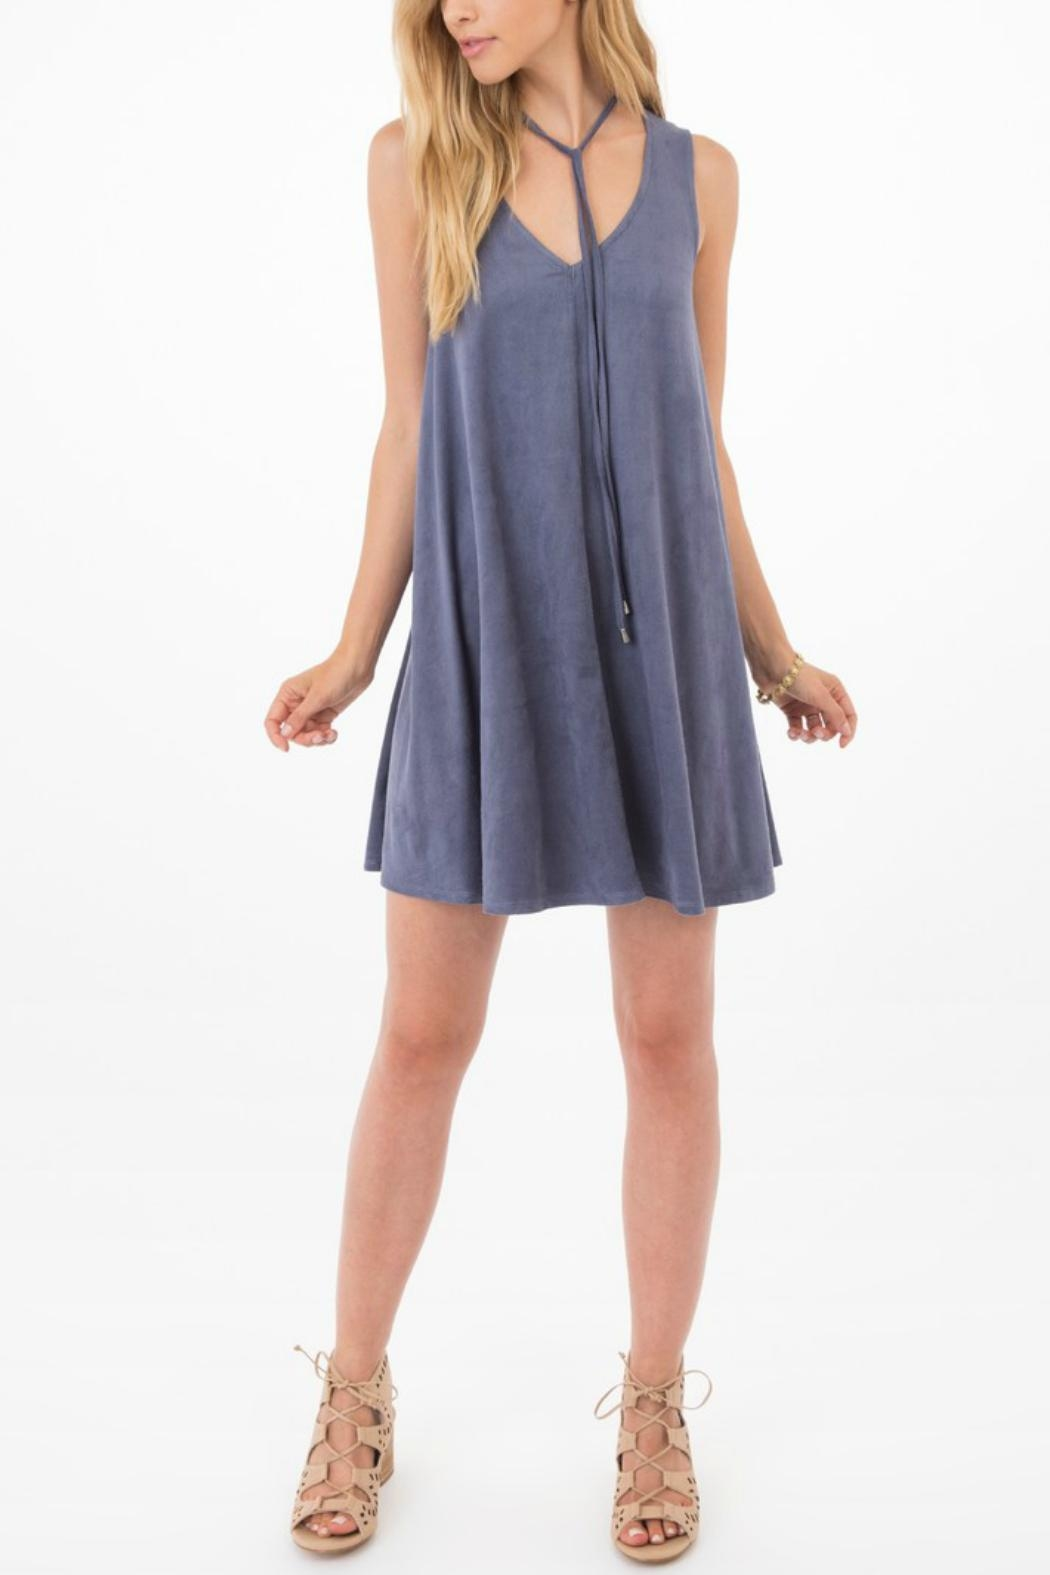 ALB Anchorage Elowan Suede Dress - Back Cropped Image